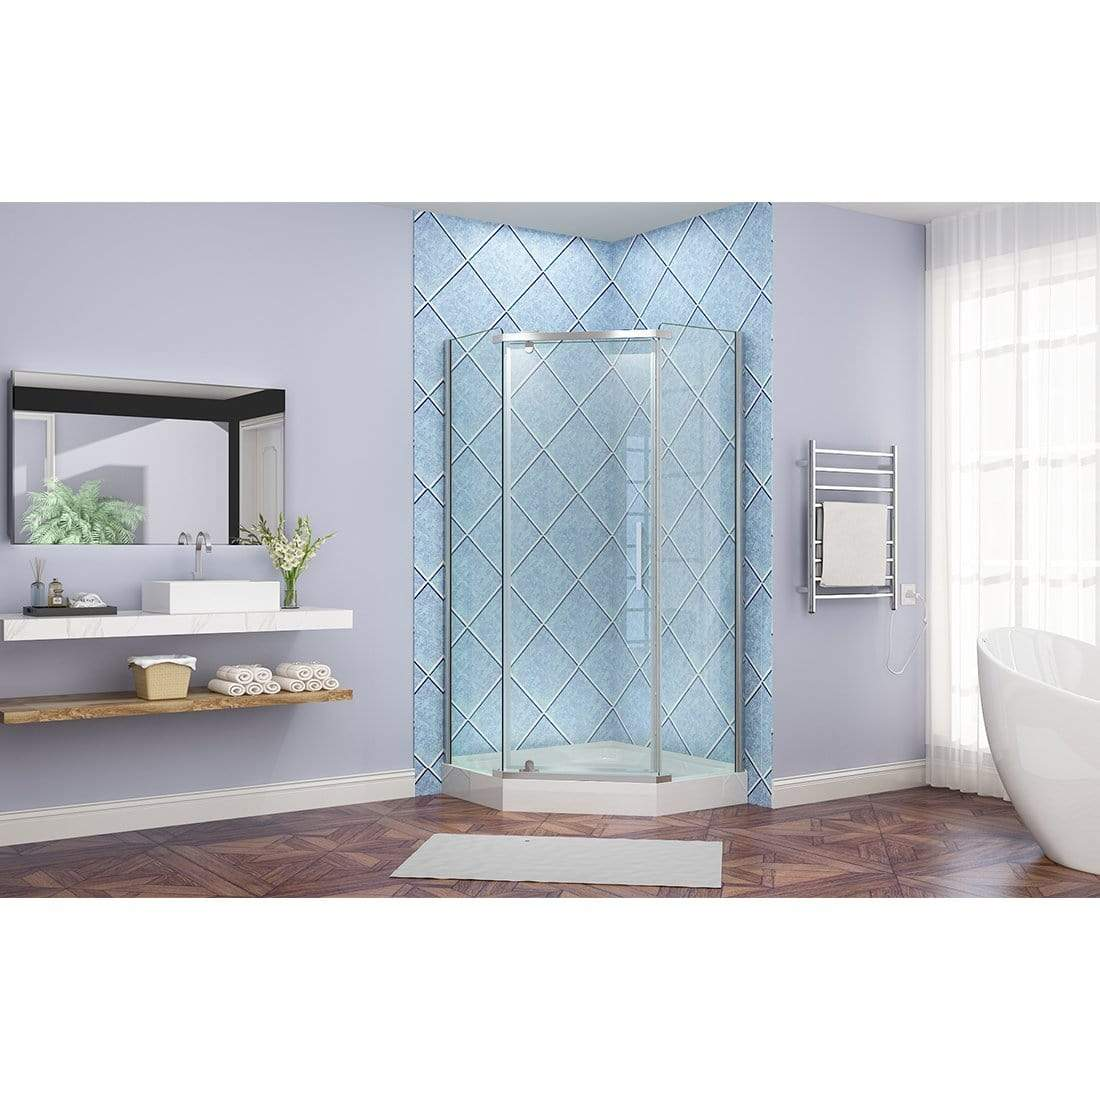 ELEGANT SHOWERS Diamond Frameless Shower Screen with Brass Pivot ...